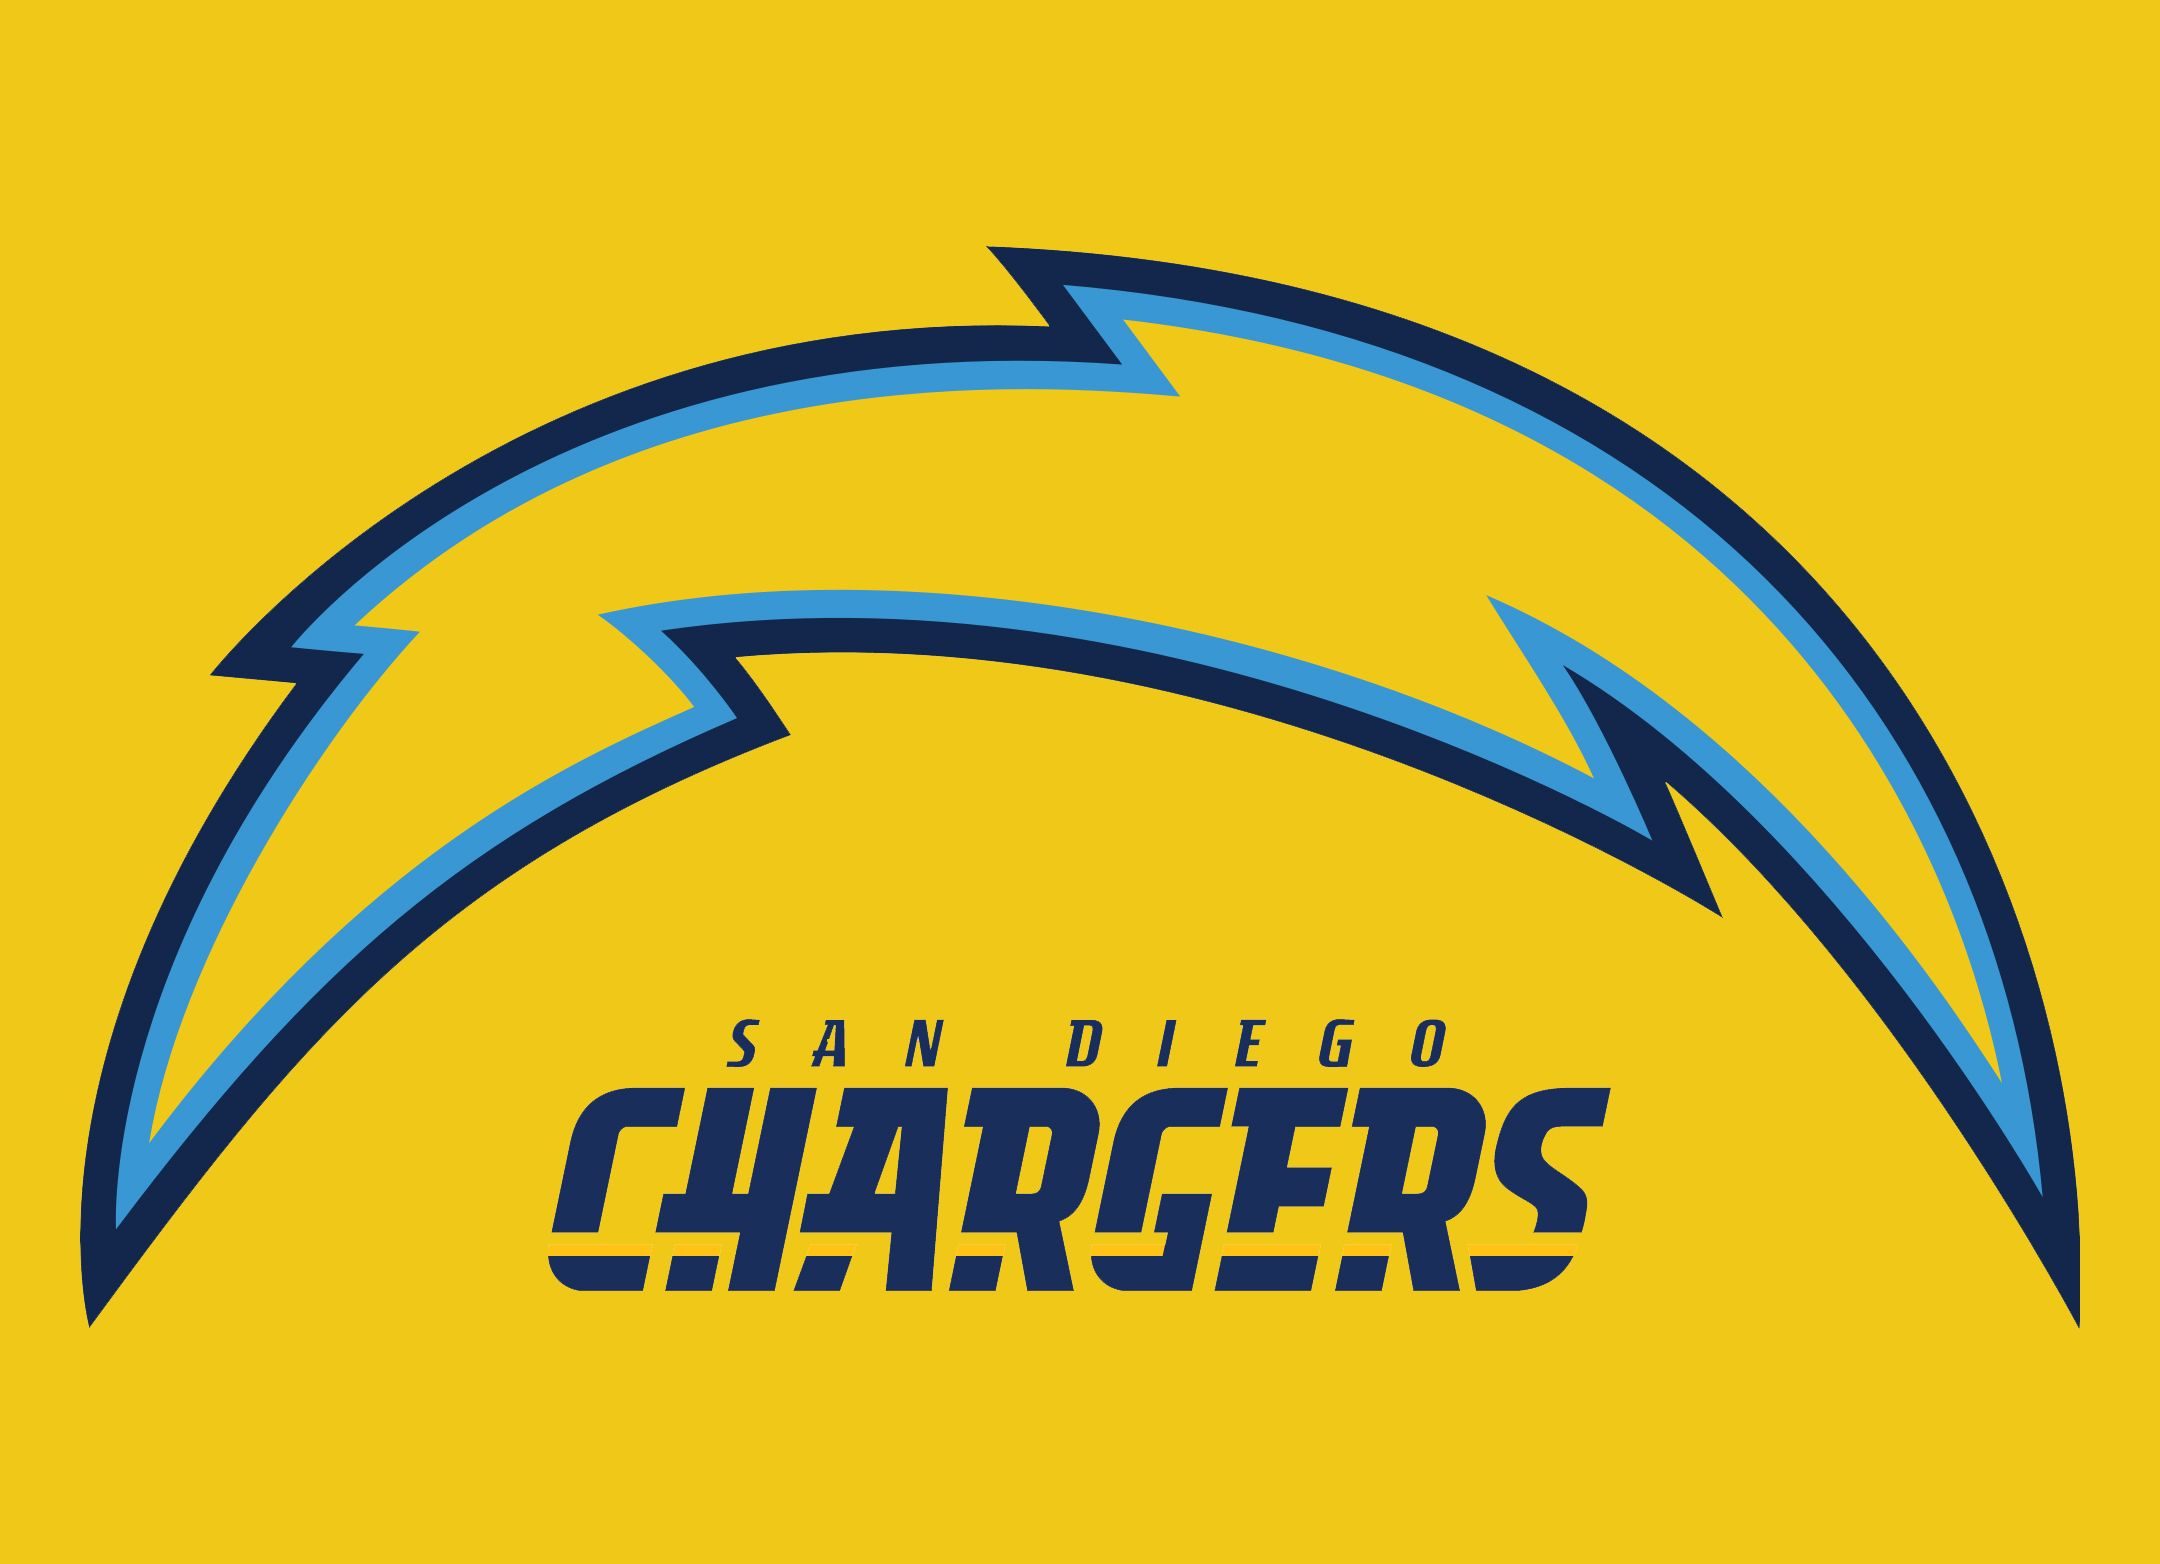 meaning san diego chargers